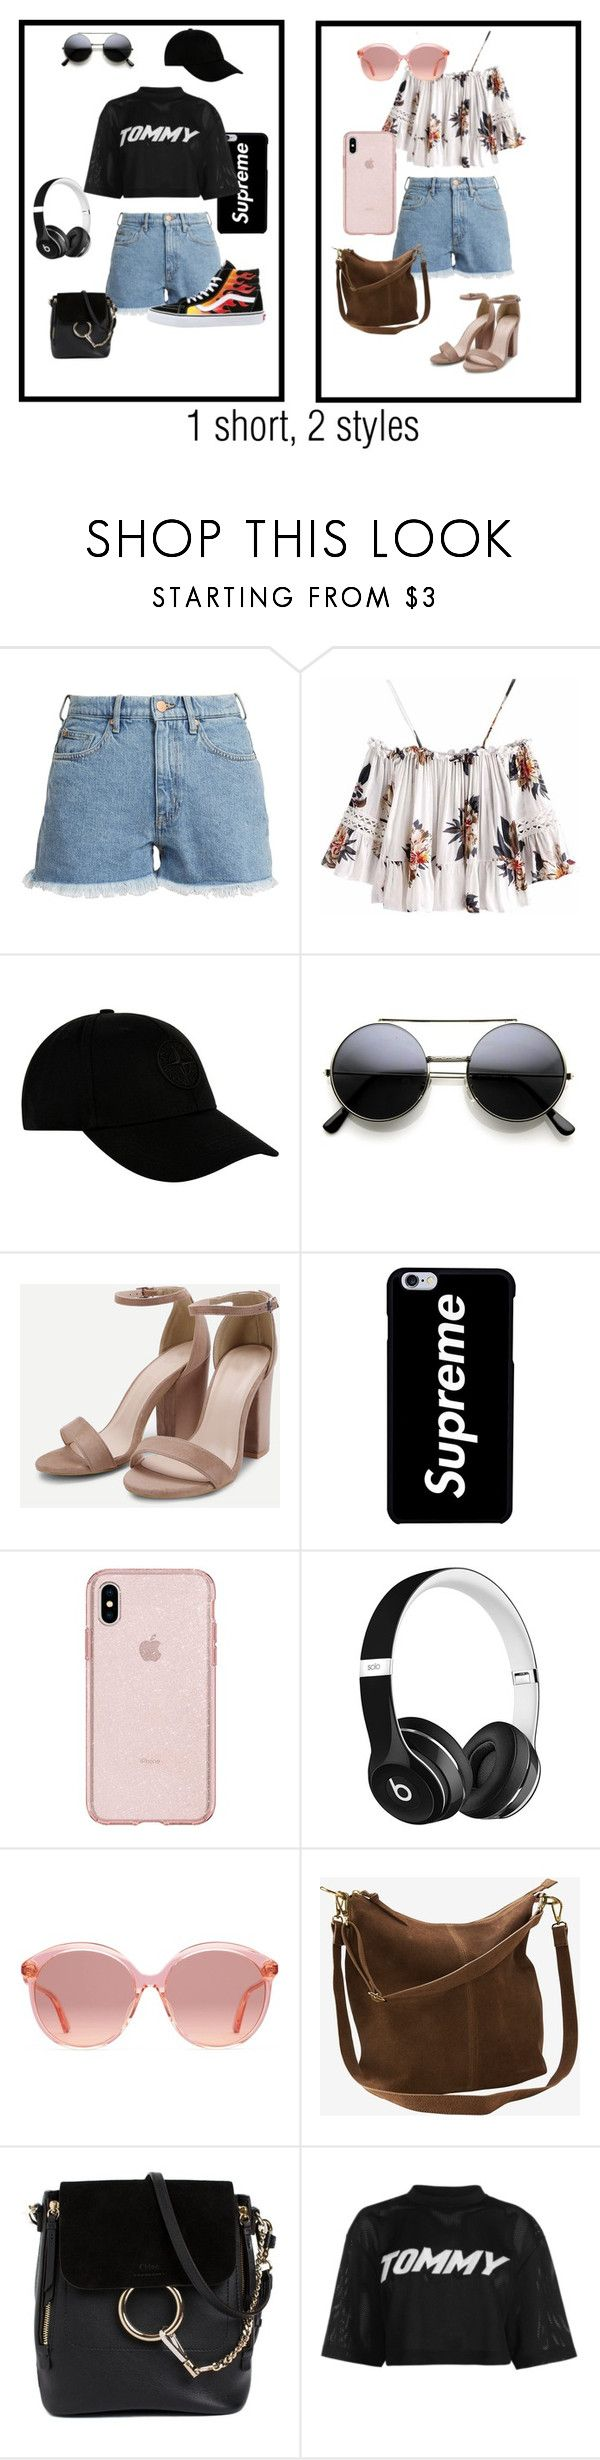 """""""1 short, 2 styles"""" by iris195 on Polyvore featuring mode, M.i.h Jeans, STONE ISLAND, Beats by Dr. Dre, Gucci, Ellos, Chloé, Tommy Hilfiger en Vans"""